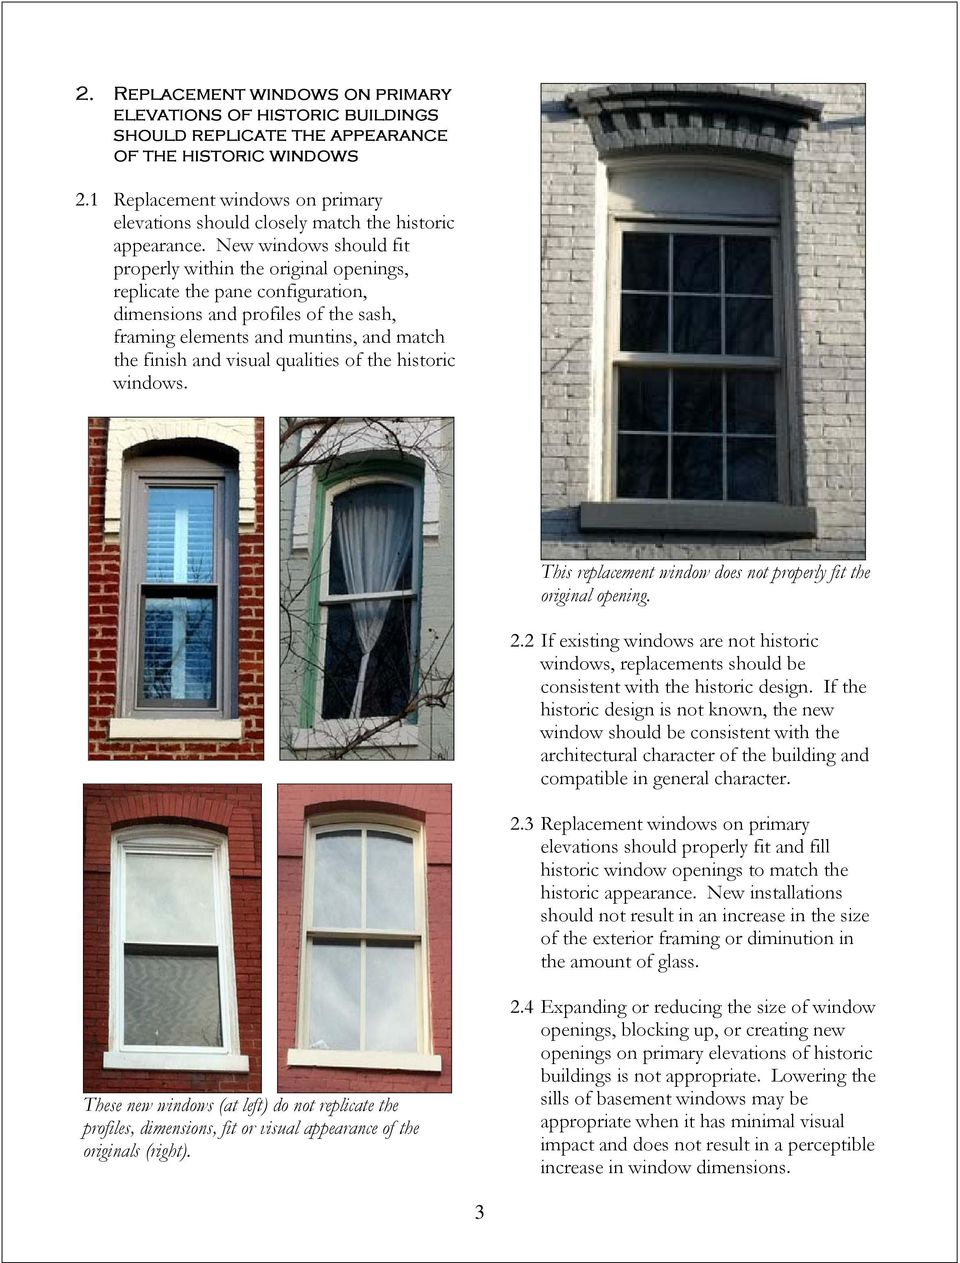 New windows should fit properly within the original openings, replicate the pane configuration, dimensions and profiles of the sash, framing elements and muntins, and match the finish and visual